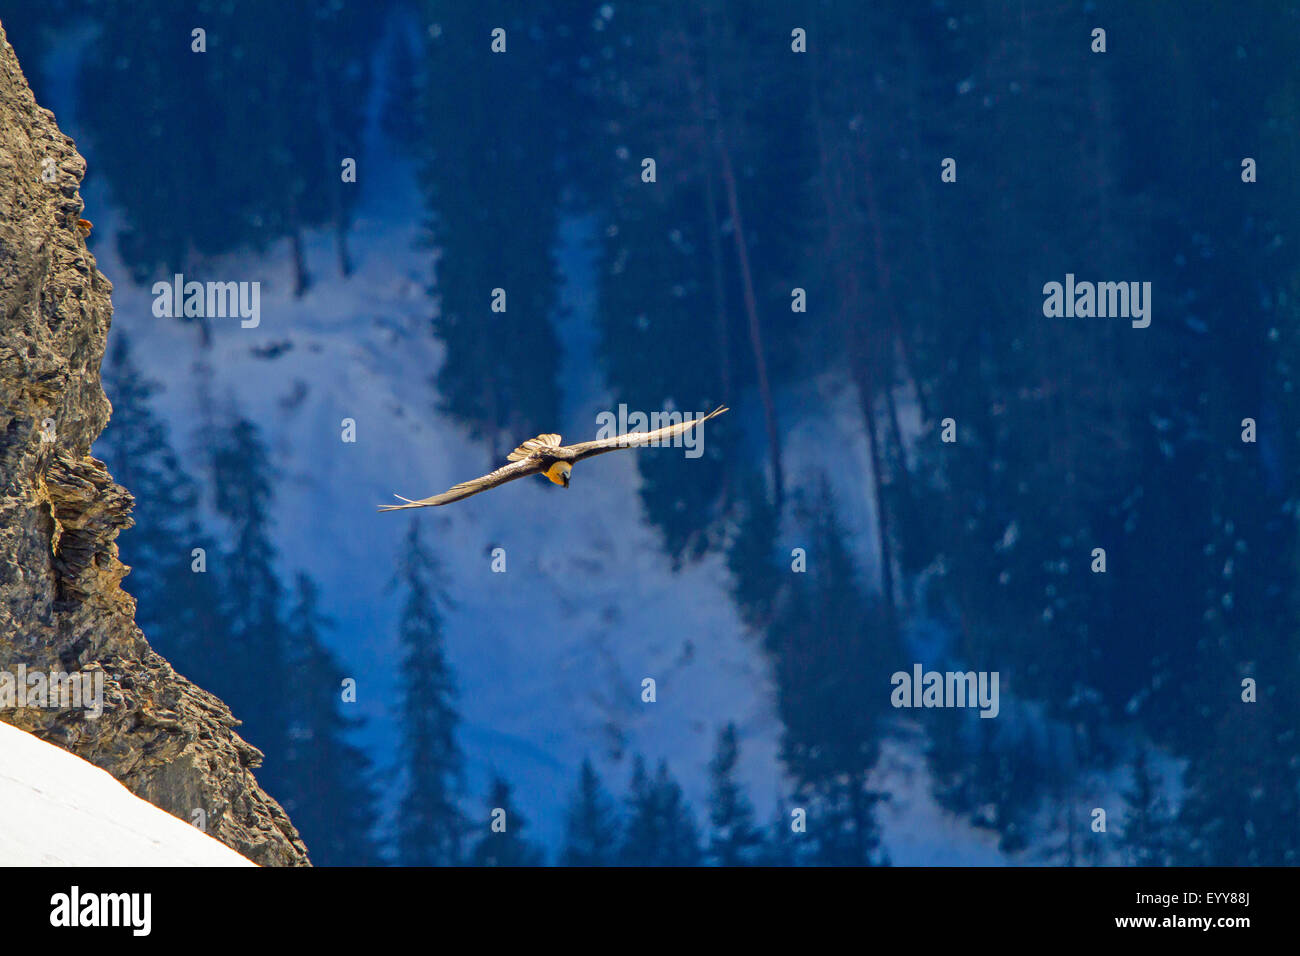 Lammergeier, Bearded Vulture (Gypaetus barbatus), bearded vulture in flight before a mountain forest, Switzerland, - Stock Image